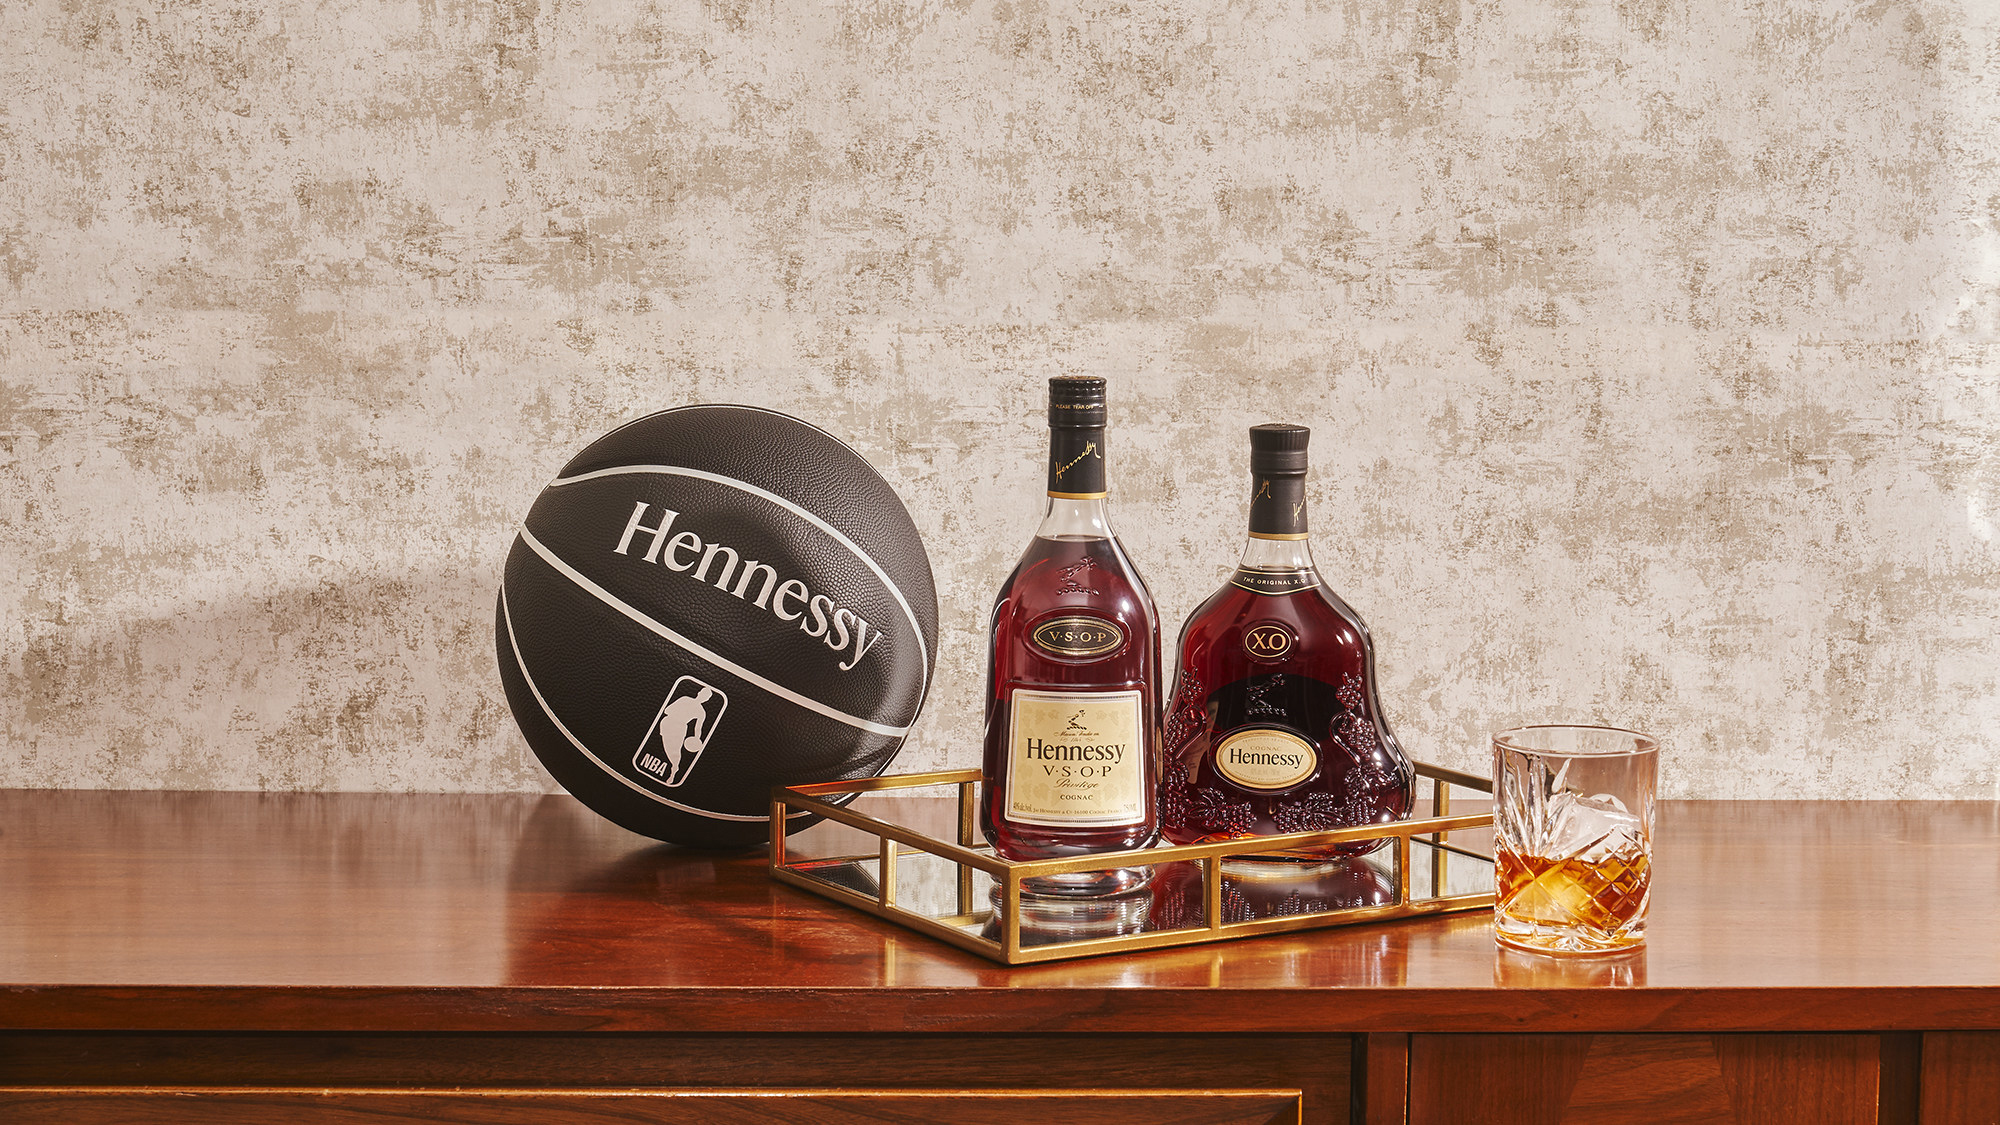 Hennessy Spirit Of The NBA New Lines Campaign Cocktails